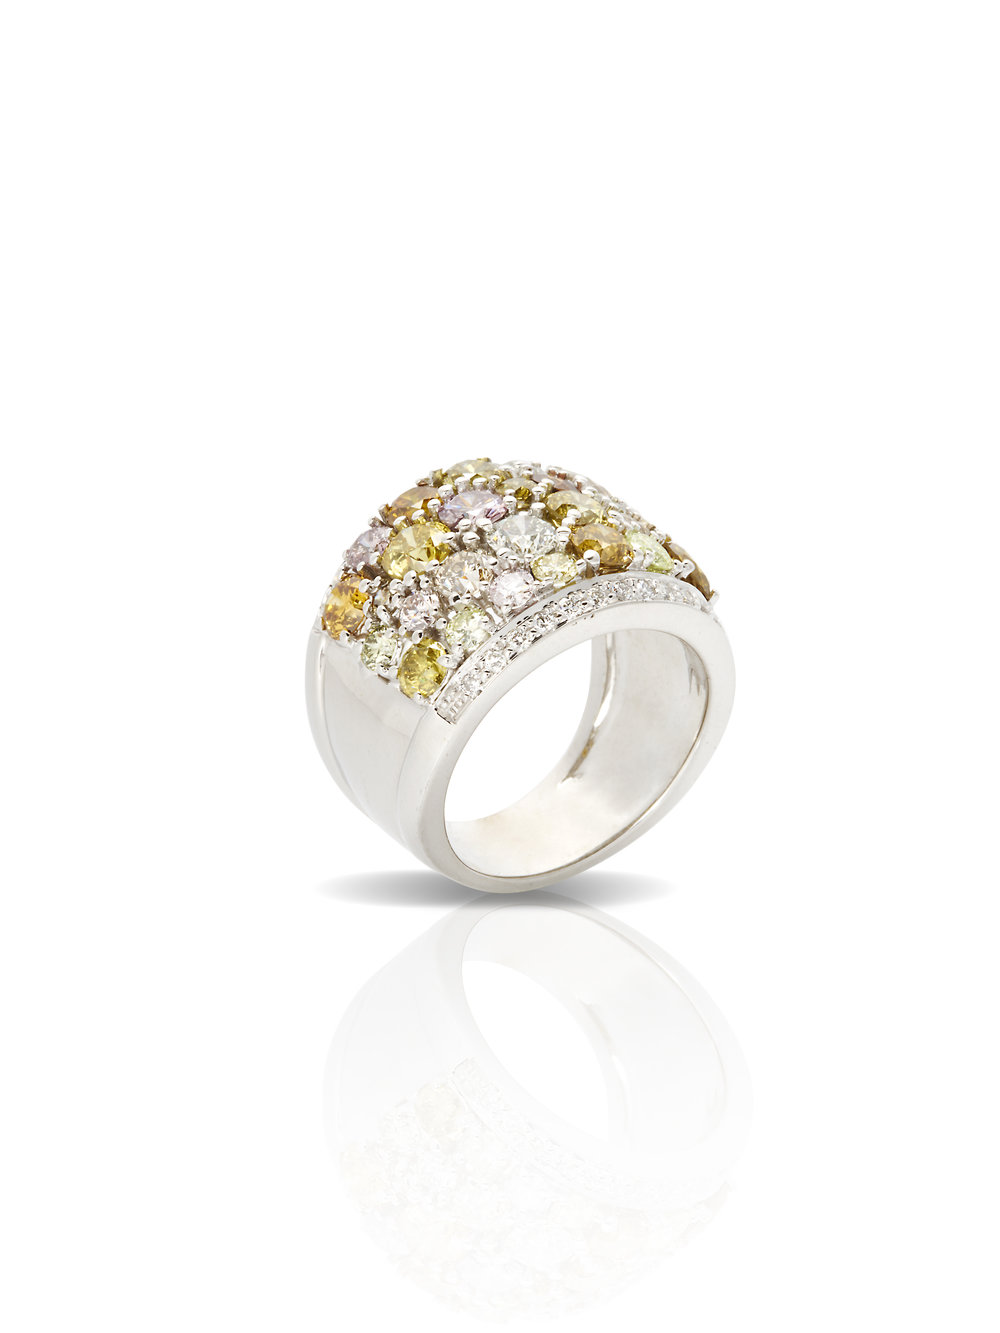 KATE RING   18 K GOLD .25 CT OF WHITE DIAMONDS 3.97 CT OF COLORED DIAMONDS      Contact for inquiry